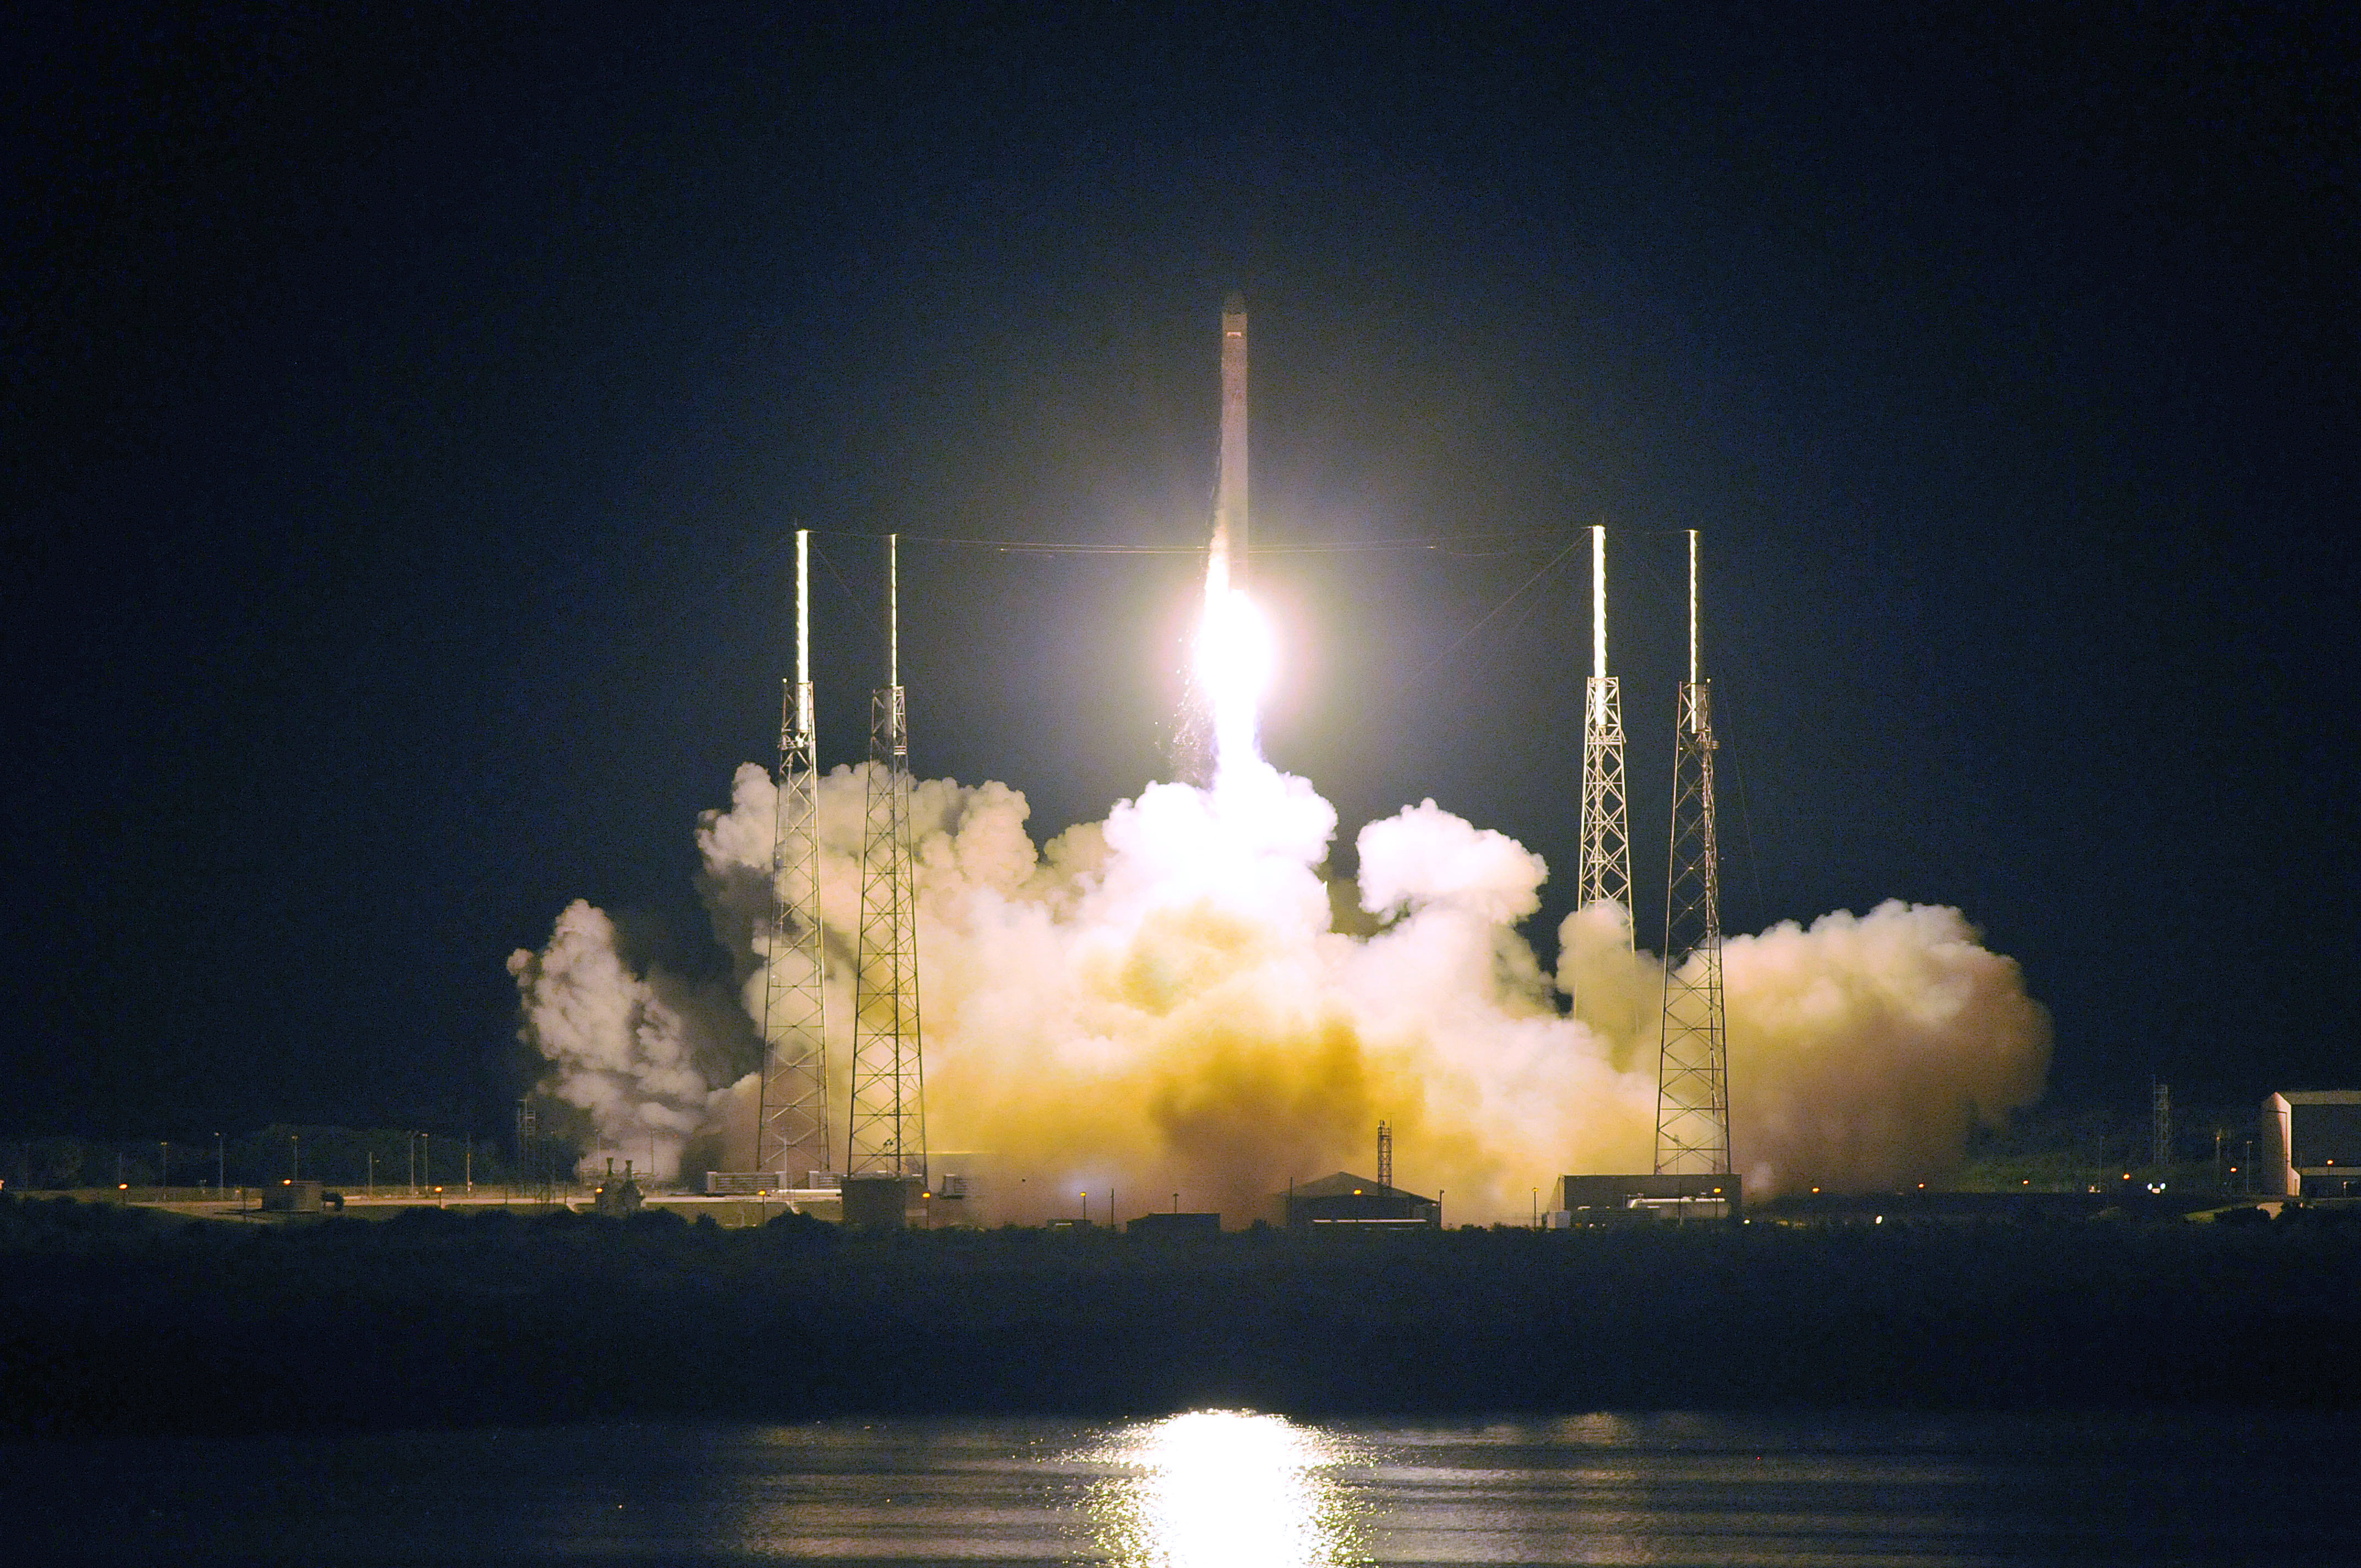 Best 51 SpaceX Dragon Wallpaper on HipWallpaper Awesome Dragon 4288x2848